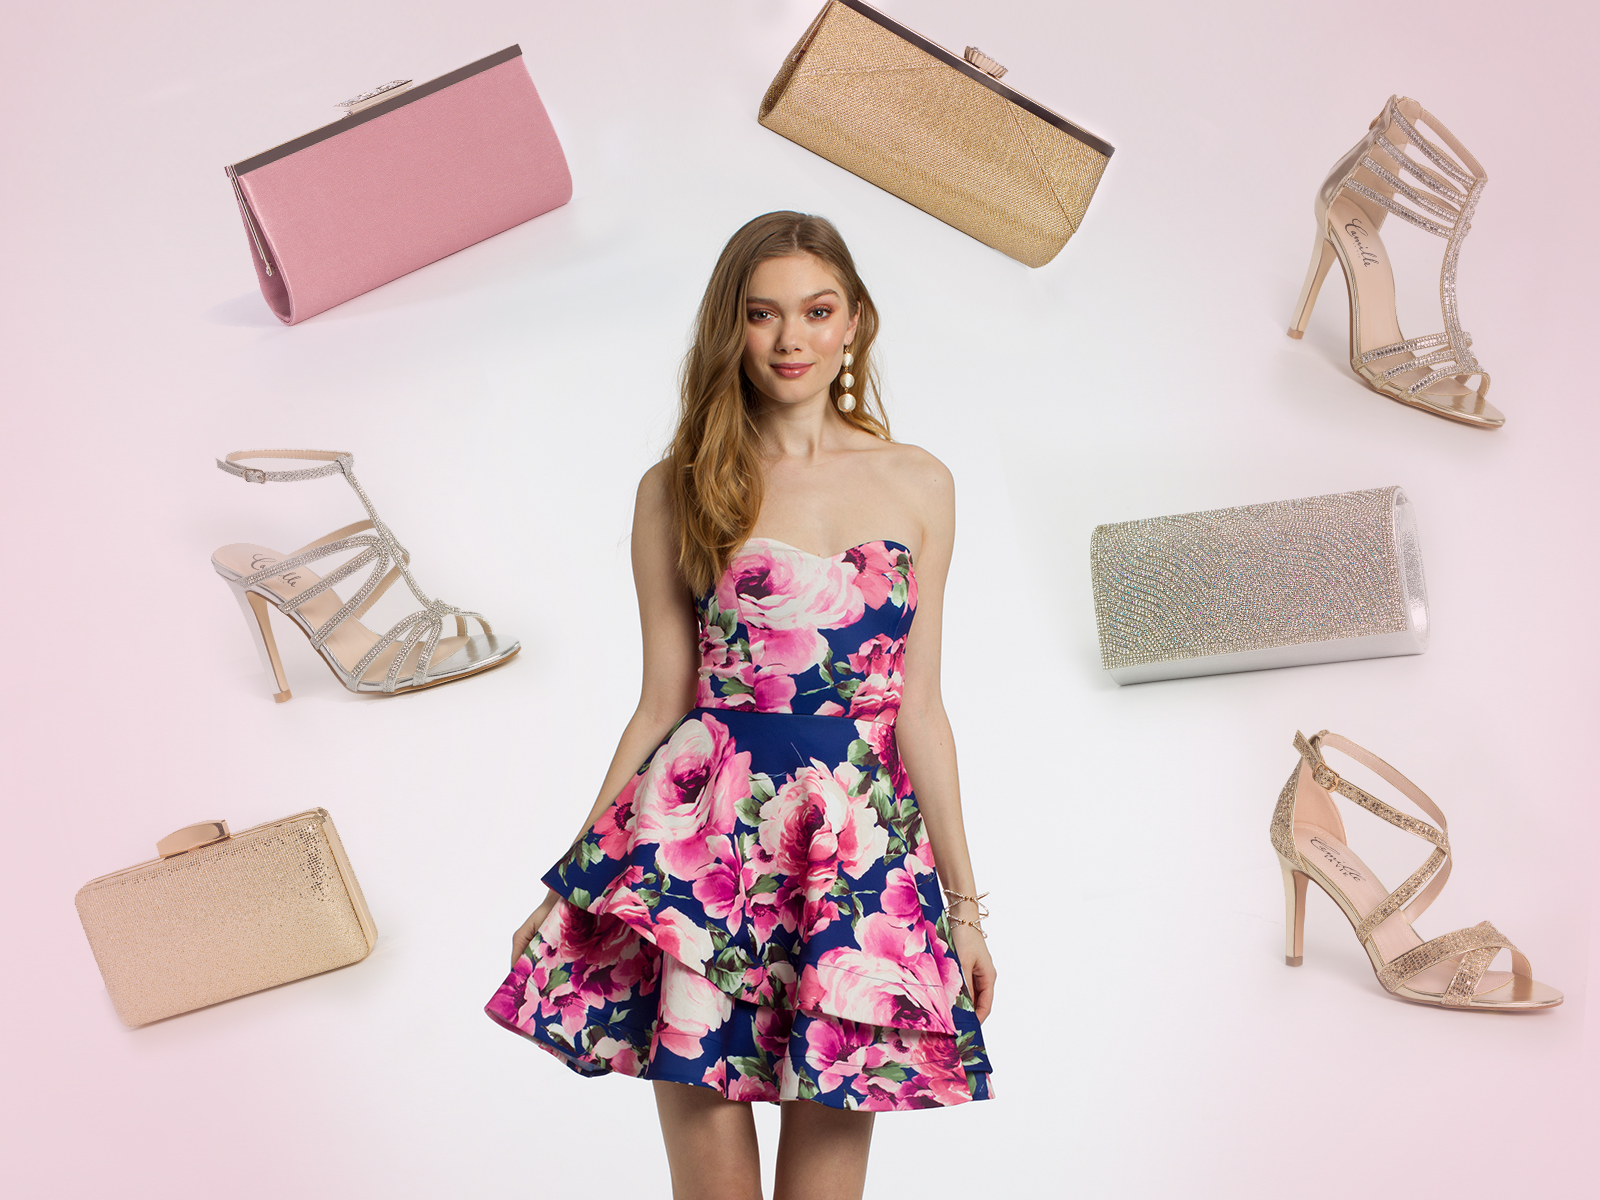 Floral Cocktail Dress and Accessories